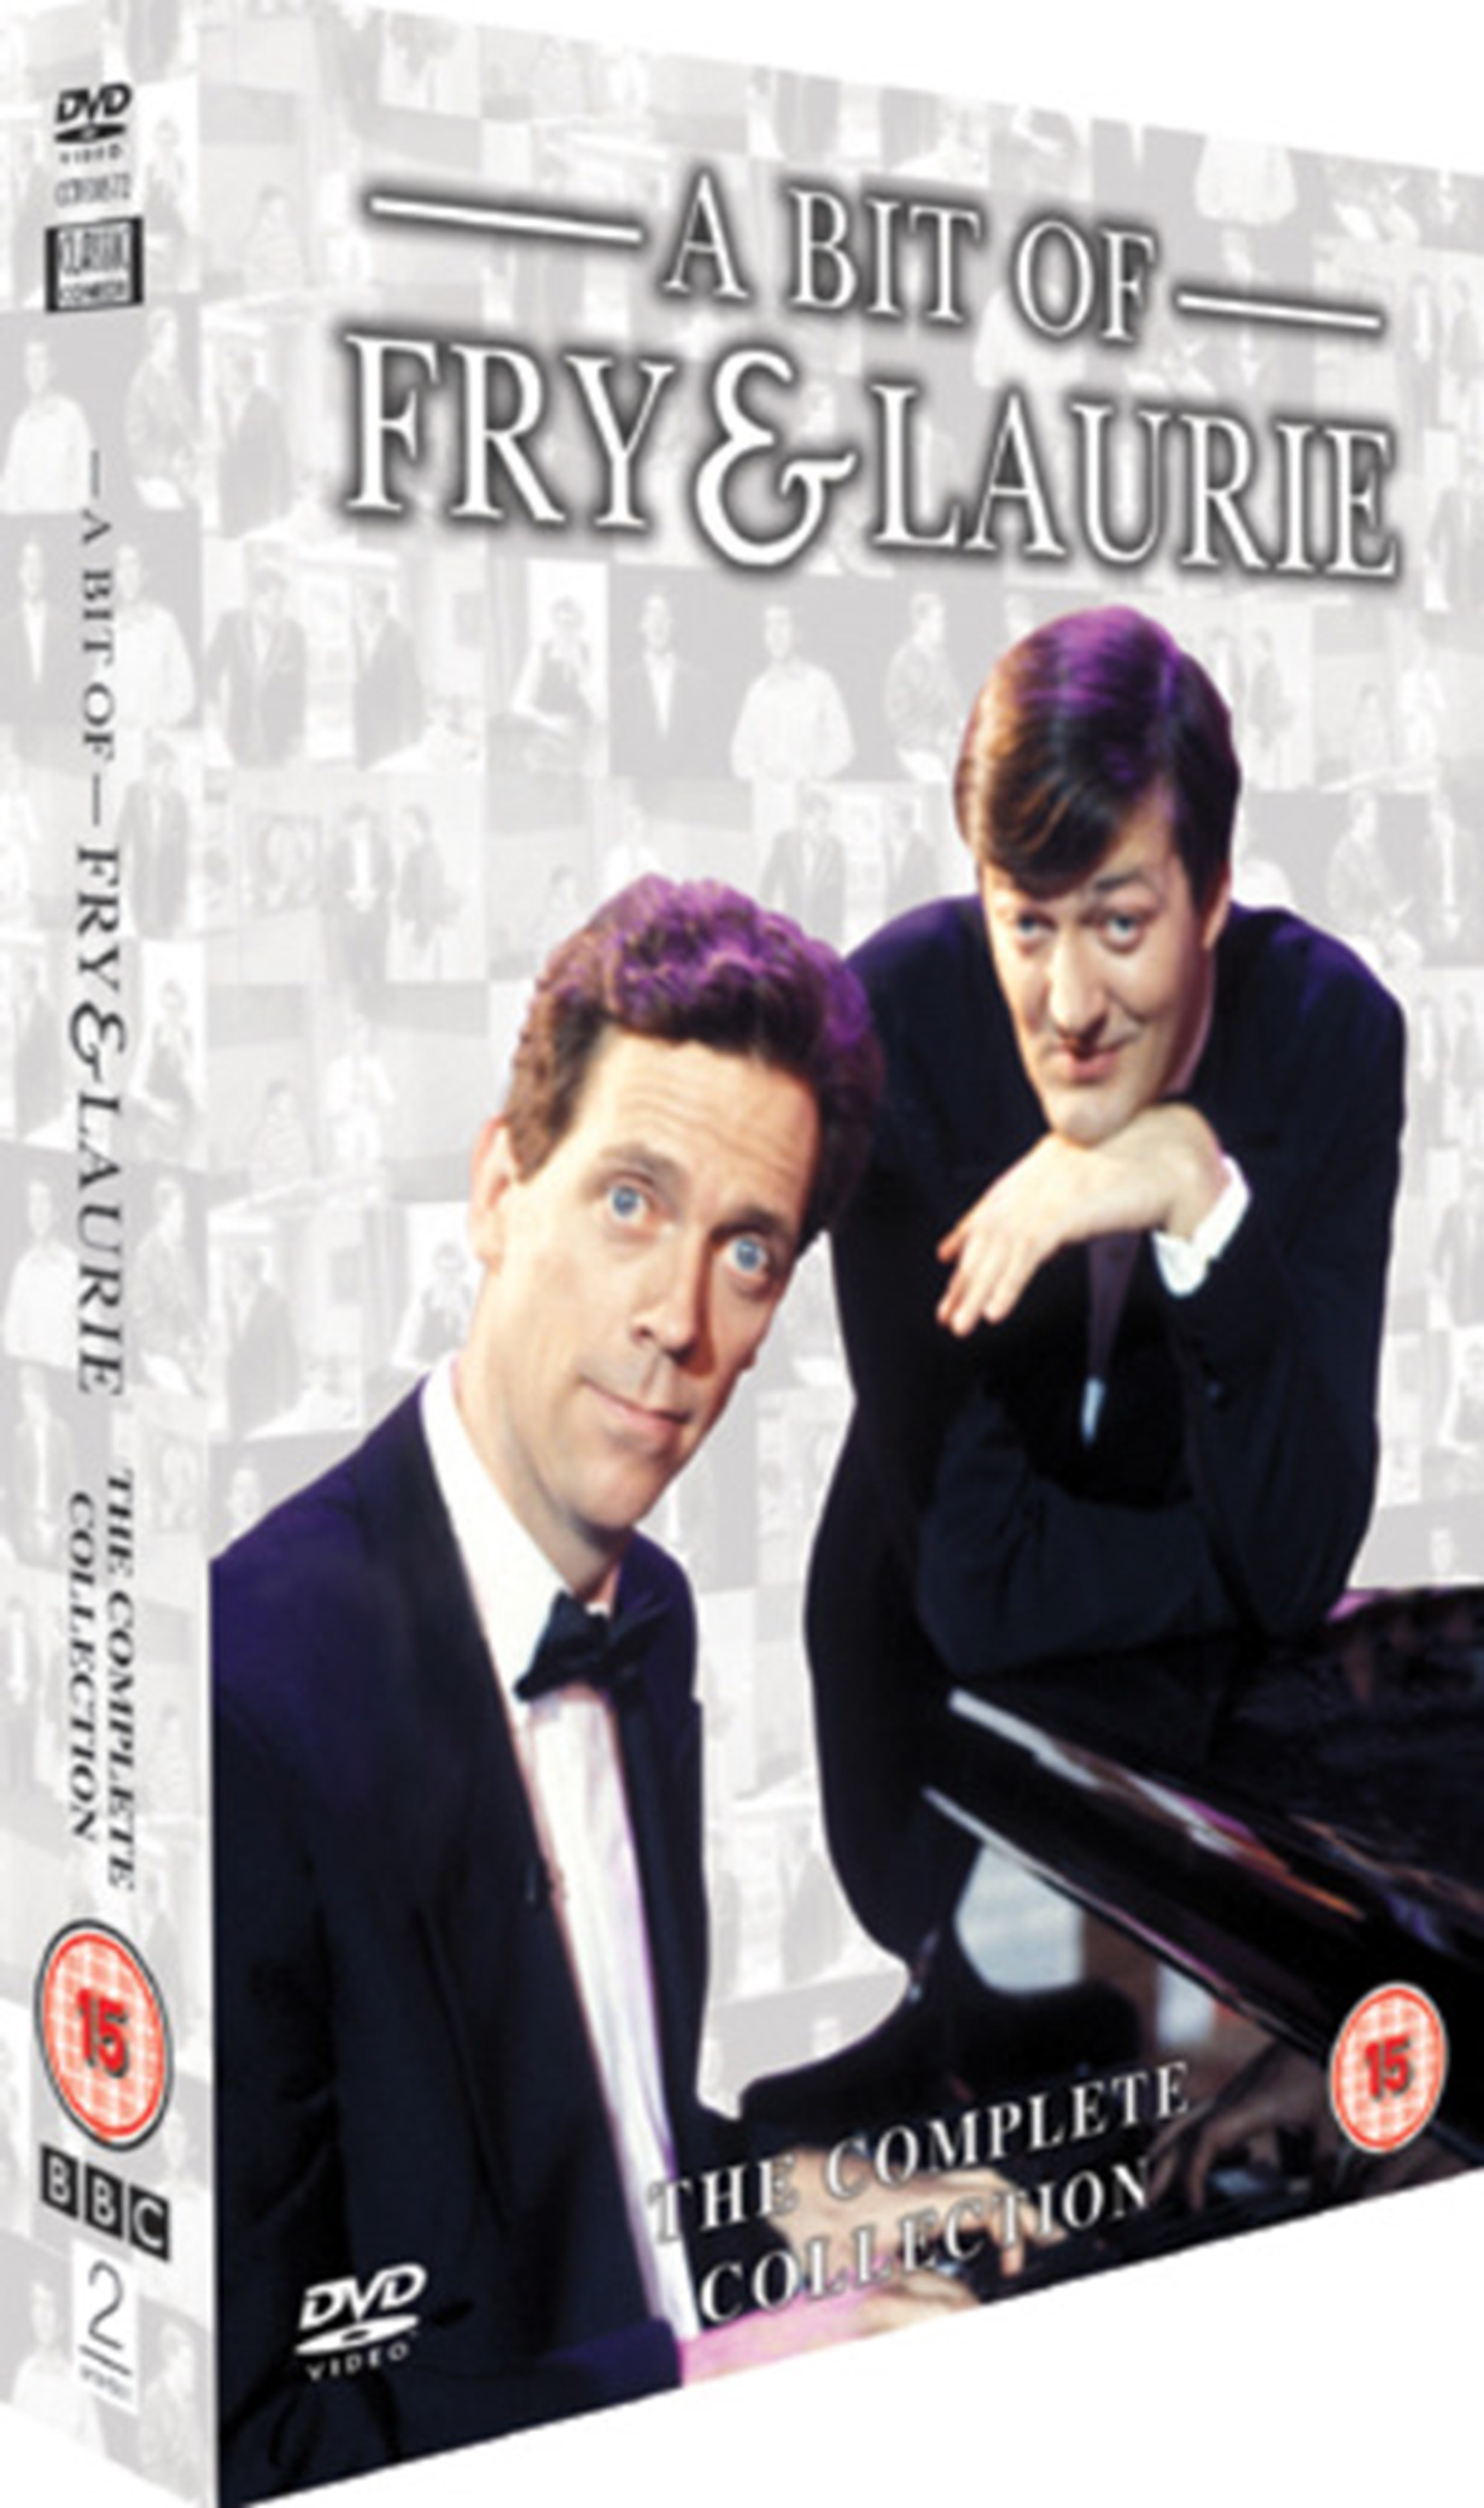 A Bit of Fry and Laurie: The Complete Collection - 1